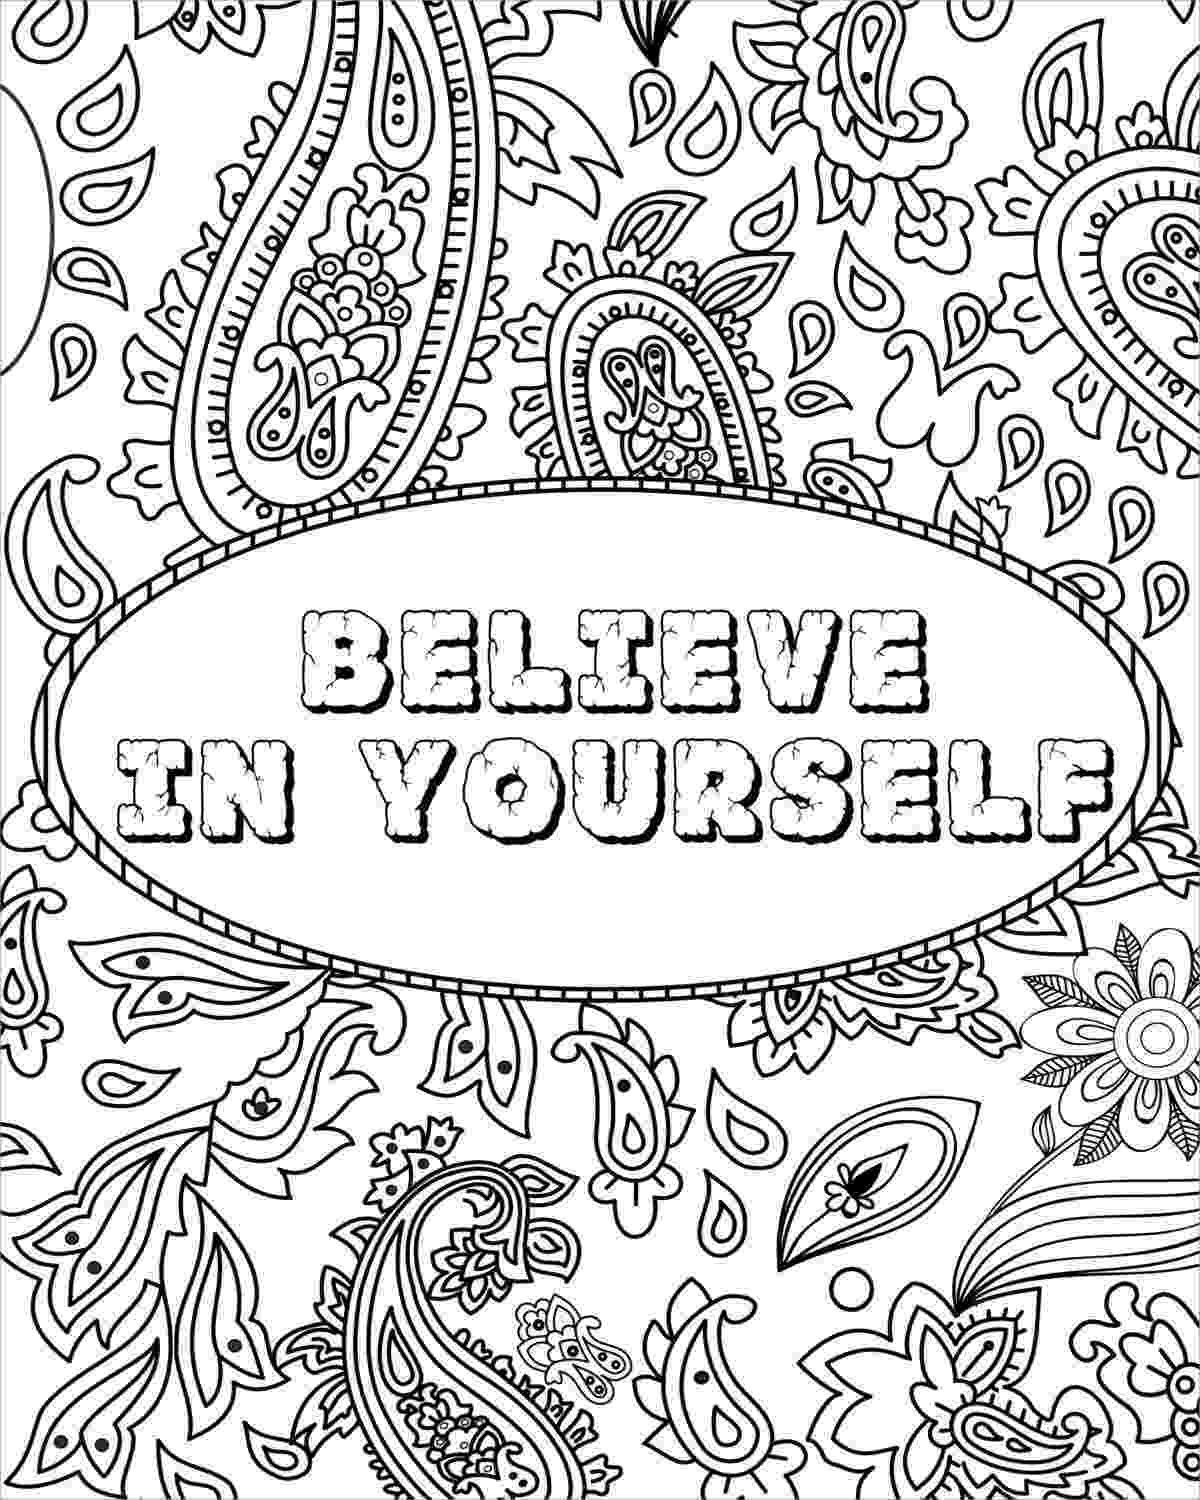 free printable quote coloring pages for adults inspirational fun quotes colouring pages by for pages free printable coloring quote adults